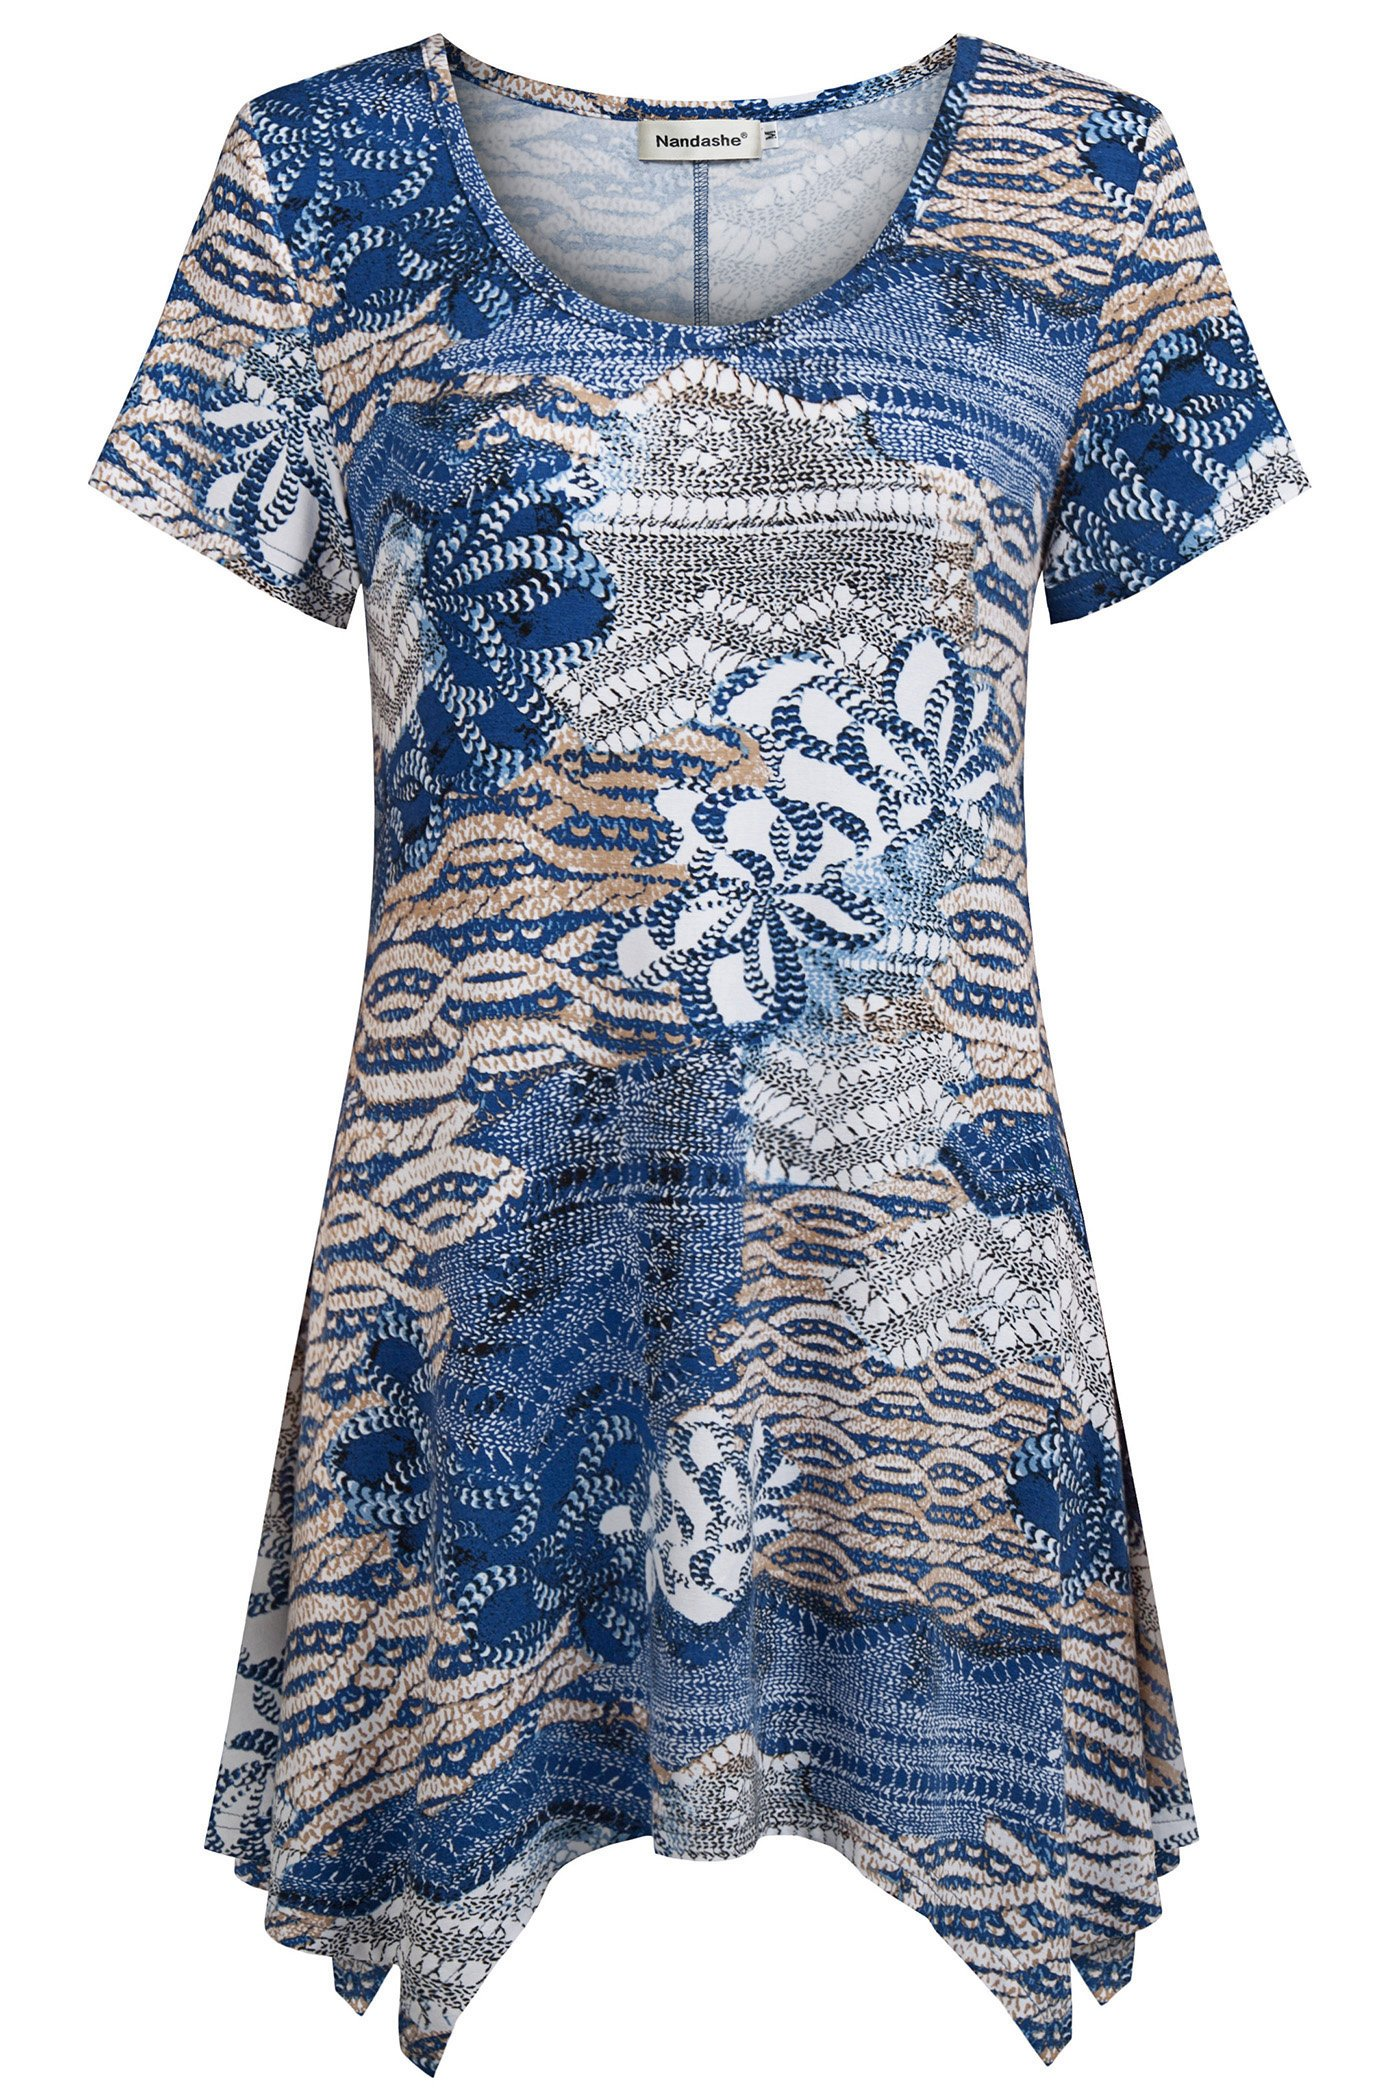 Nandashe Plus Size Clothes Women Summer, Modern Miss Sexy Scoop Collar Stretchy Cool Tunic Long Tops Capris Home Wear Blue Beige XX-Large by Nandashe